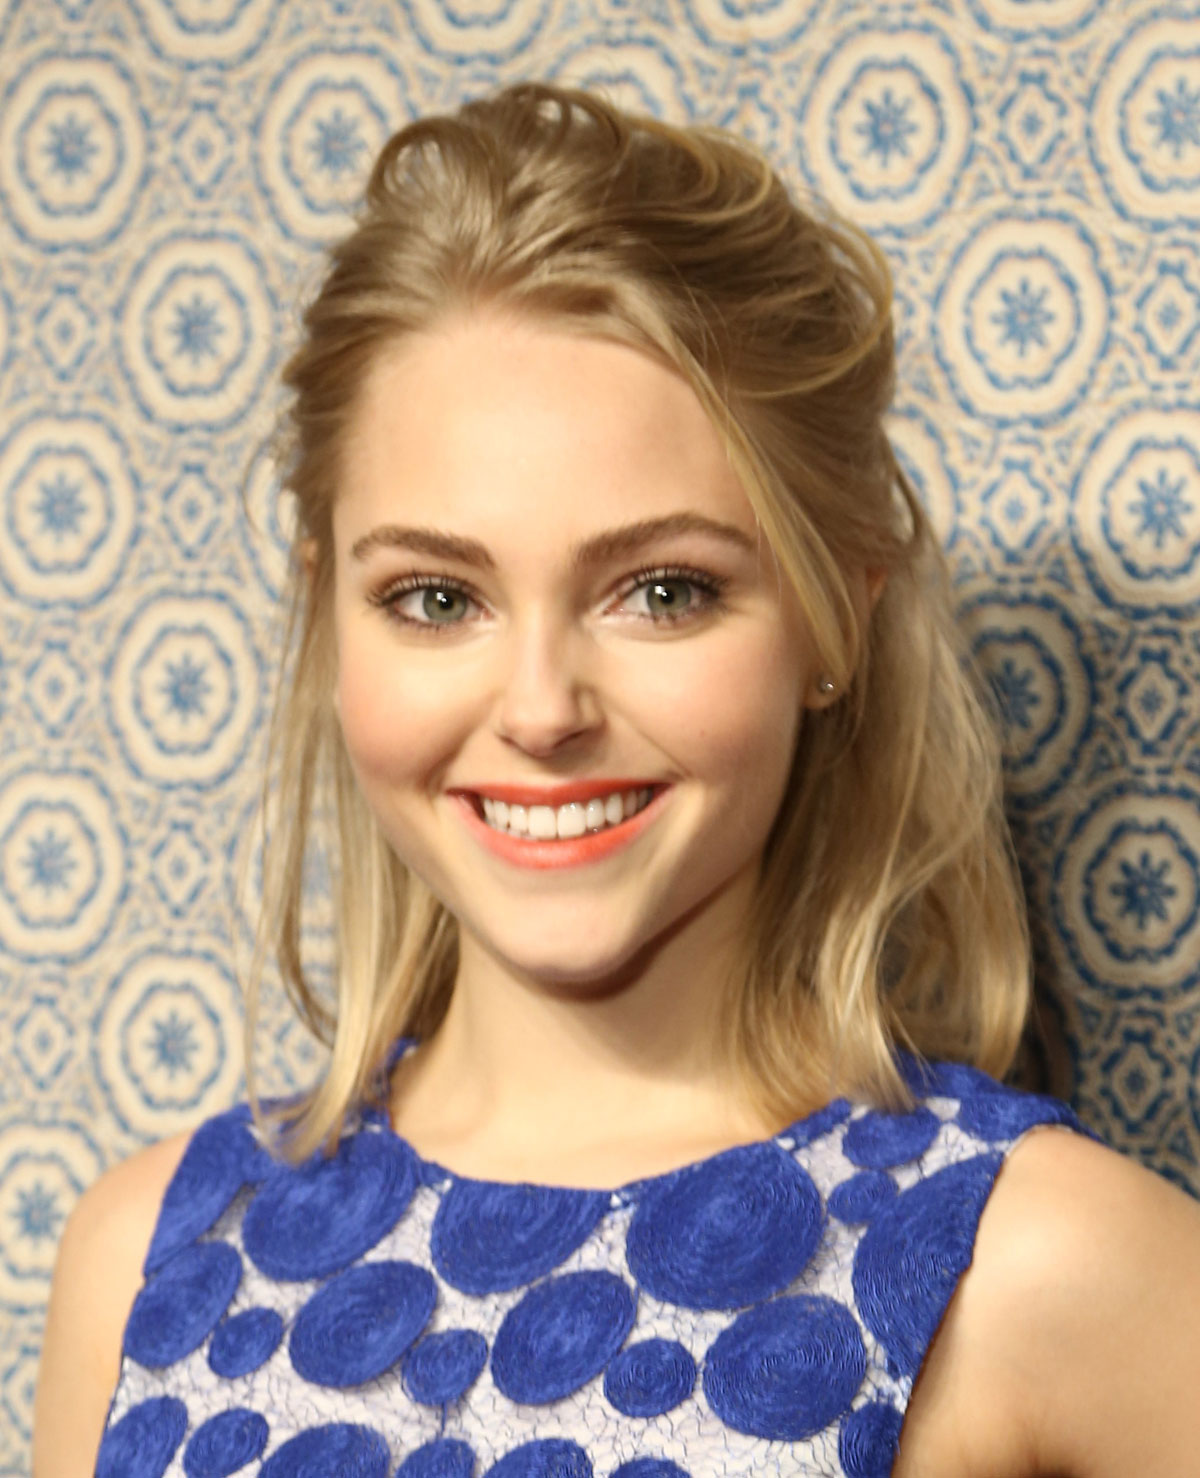 ANNASOPHIA ROBB at Alice + Olivia by Stacey Bendet Fall 2013 Fashion Show in New York